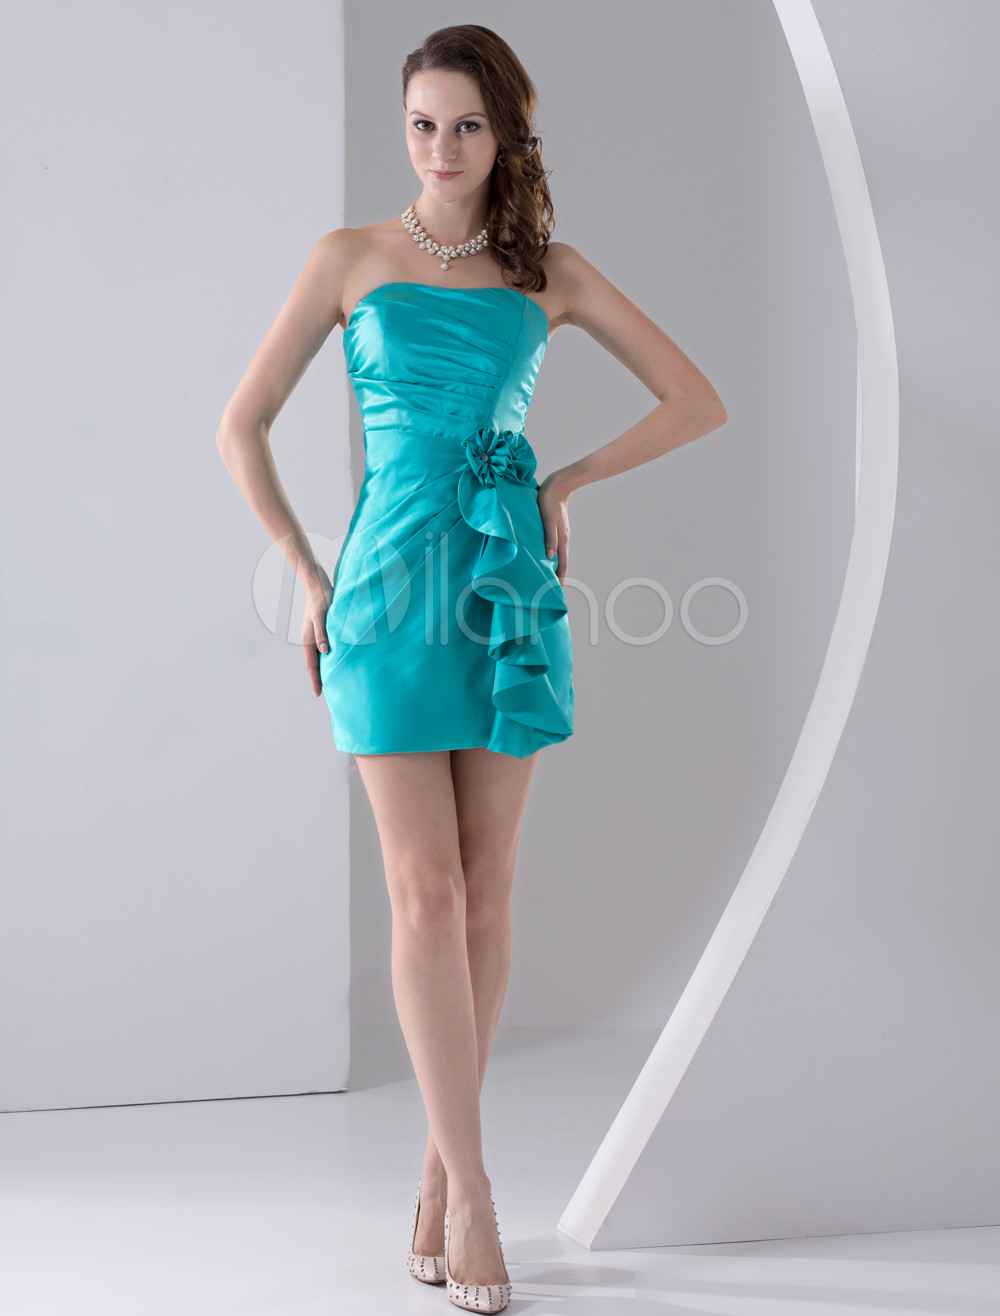 Mini Bridesmaid Dress Turquoise Strapless Satin flower Ruched Ruffle Bodycon Party Dress